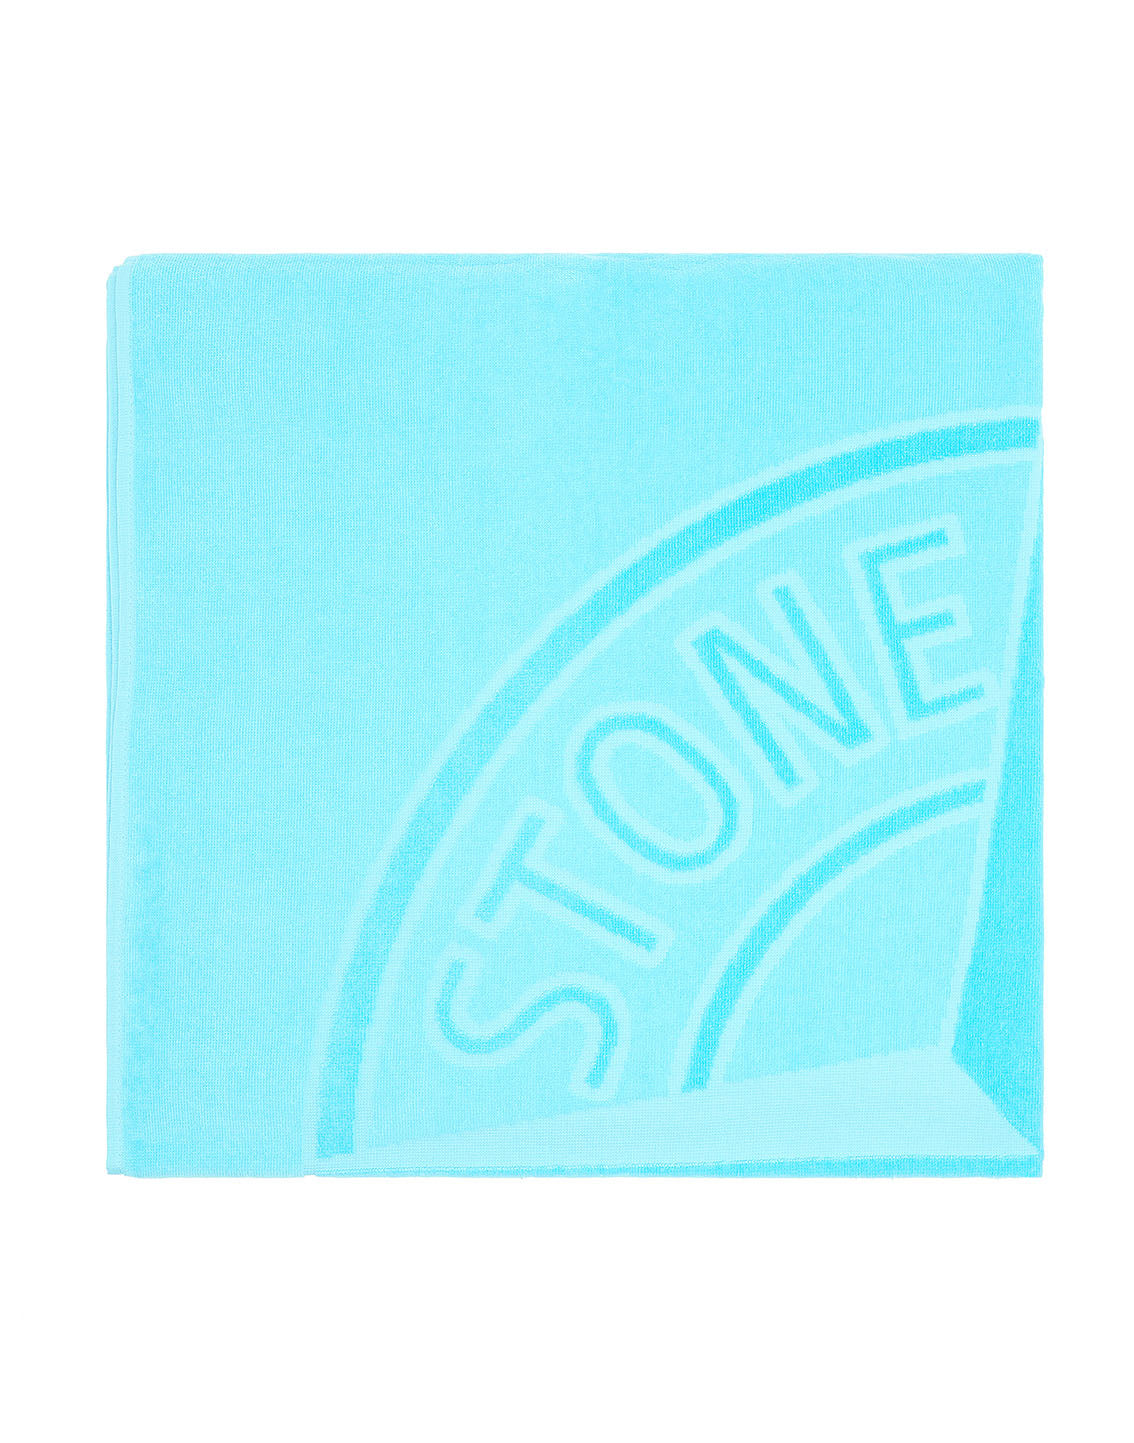 93177 Beach Towel in Turquoise